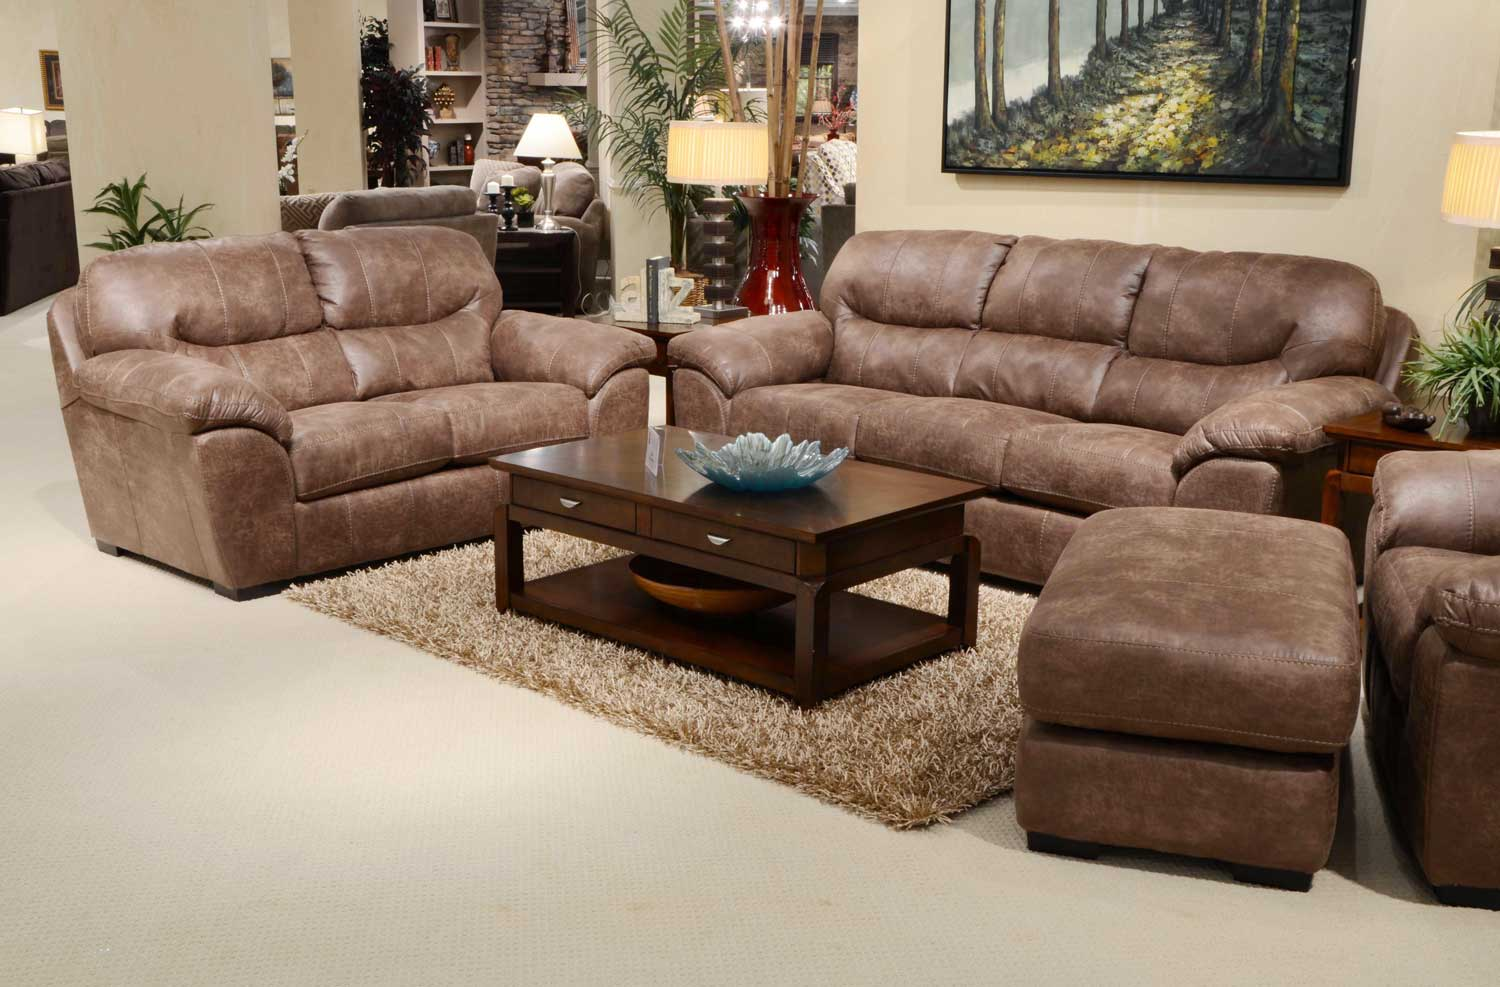 Jackson Grant Bonded Leather Sofa Set   Silt